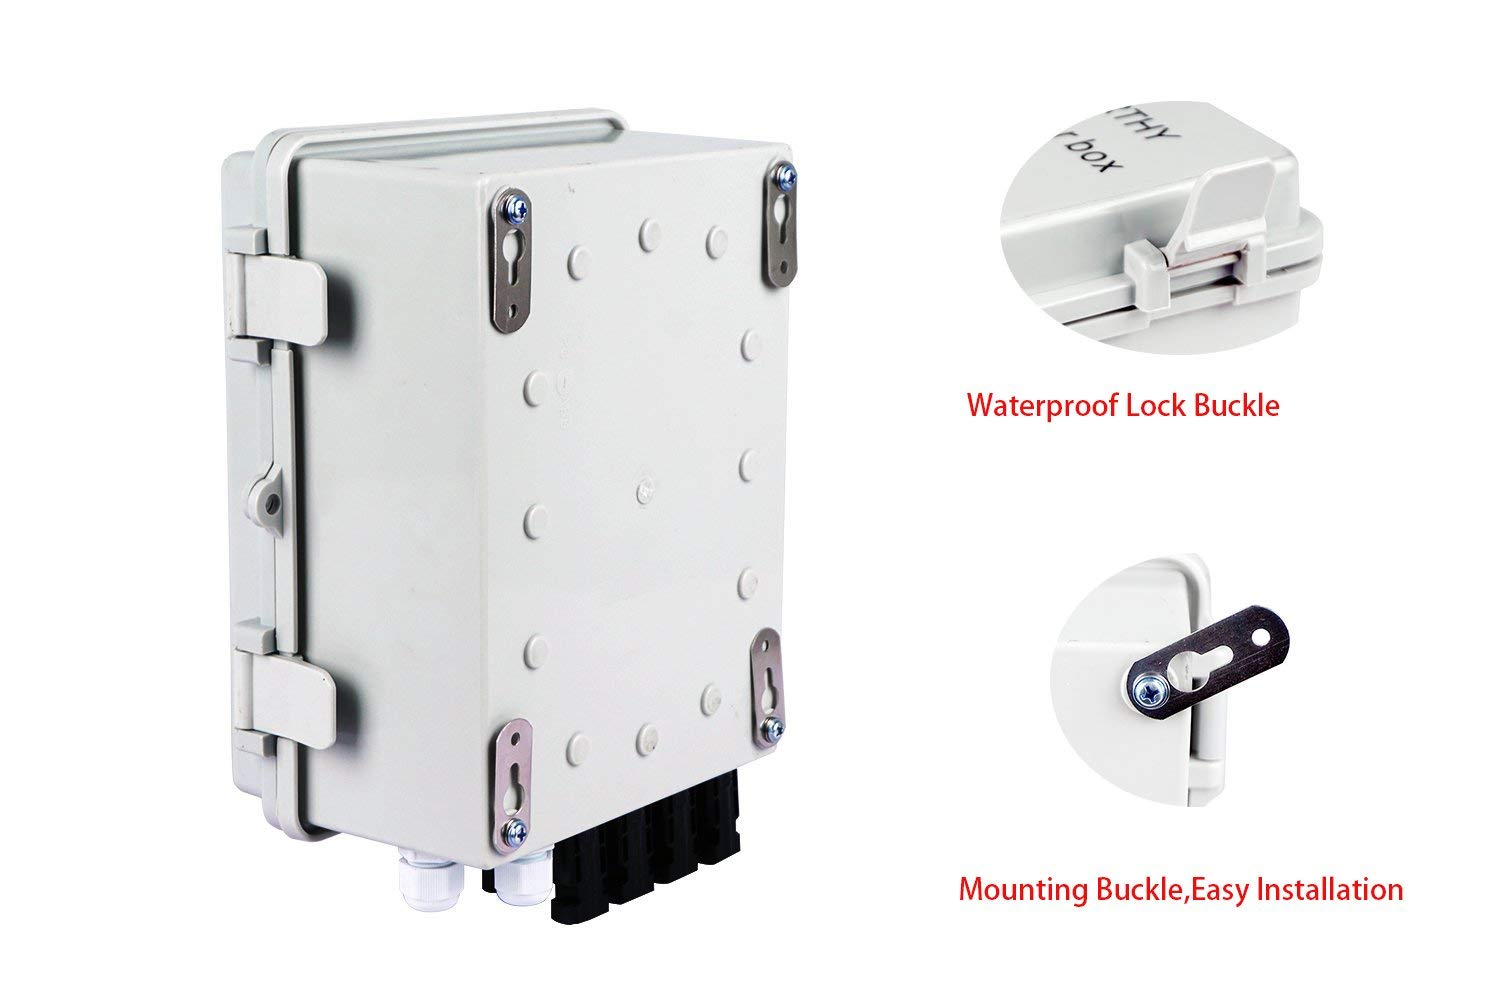 ECO-WORTHY 4 String PV Combiner Joint Box 10A Circuit Breakers for On//Off Grid Solar Panel System